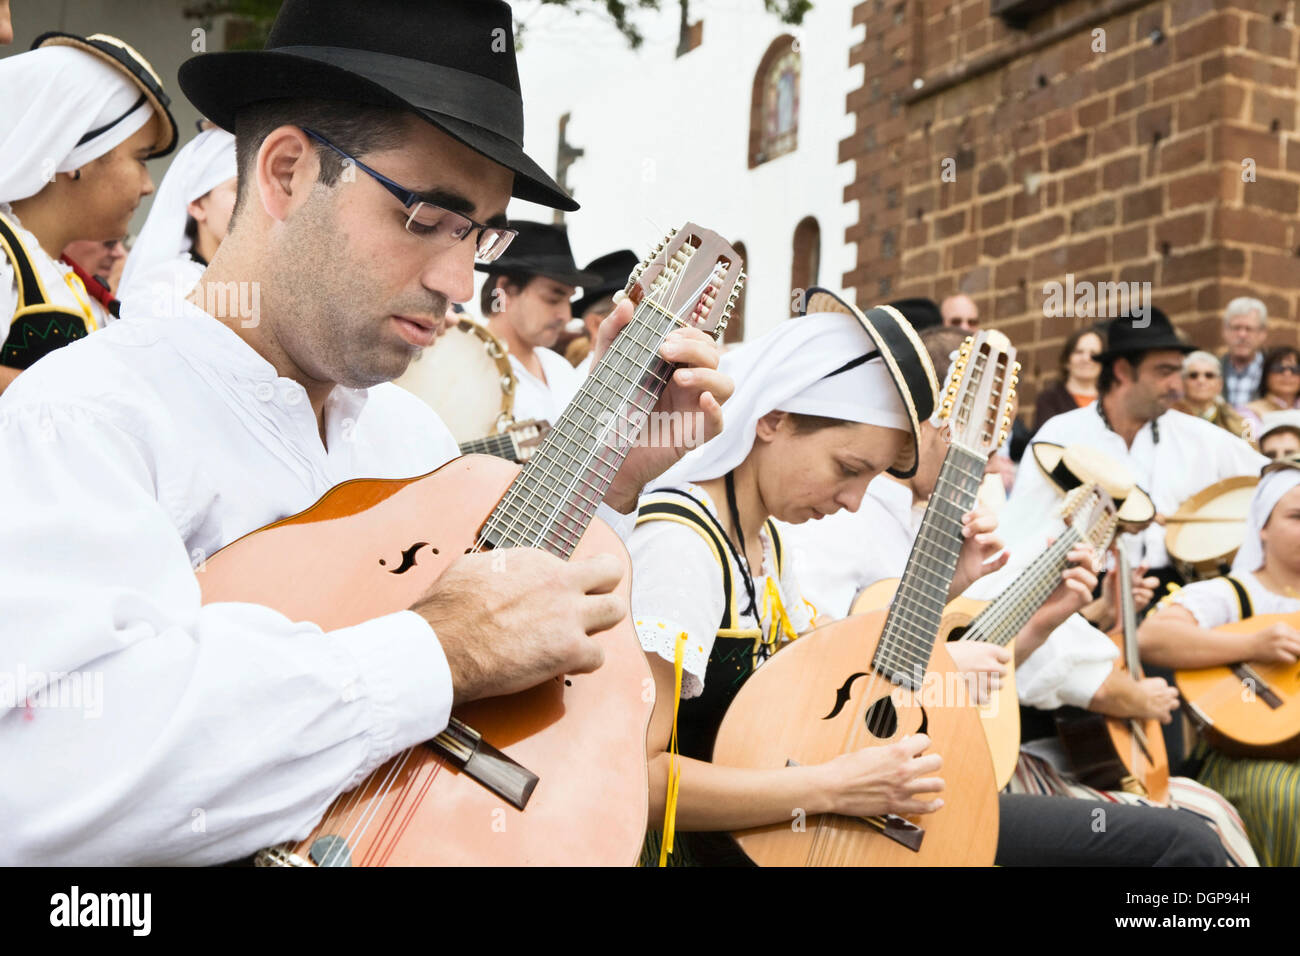 Traditional folk group at the market in Teguise, Lanzarote, Canary Islands, Spain, Europe - Stock Image